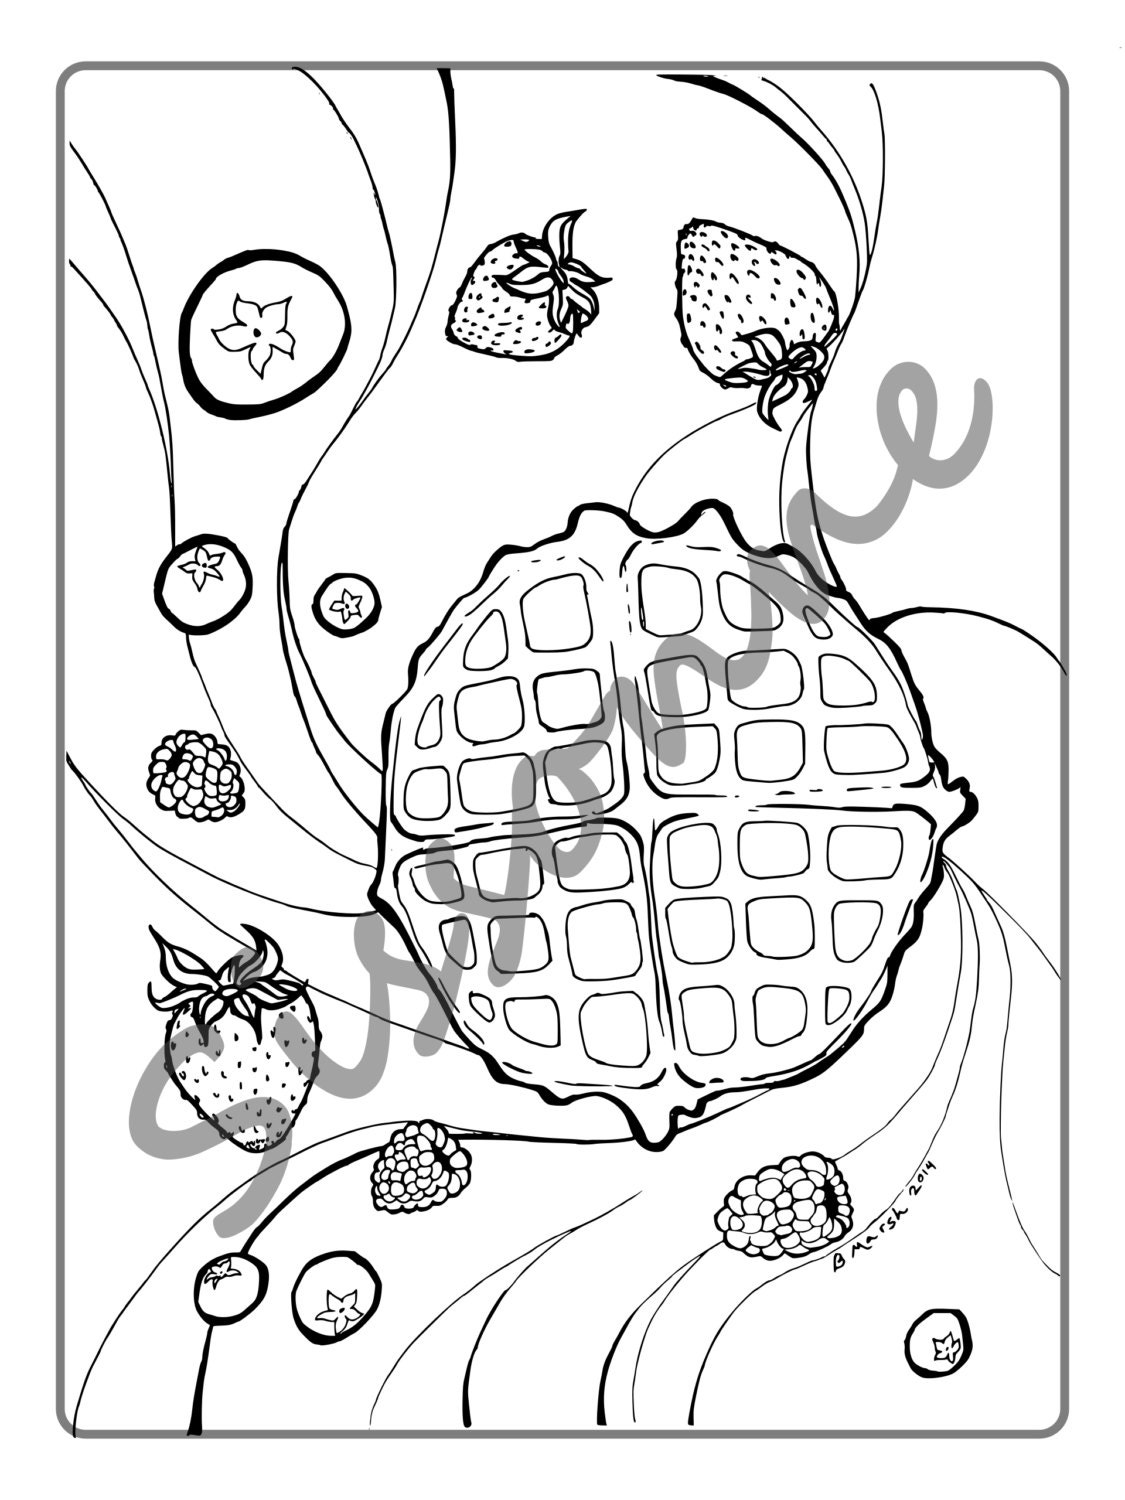 Waffle and berry breakfast coloring page by blendandburnish for Waffle coloring page